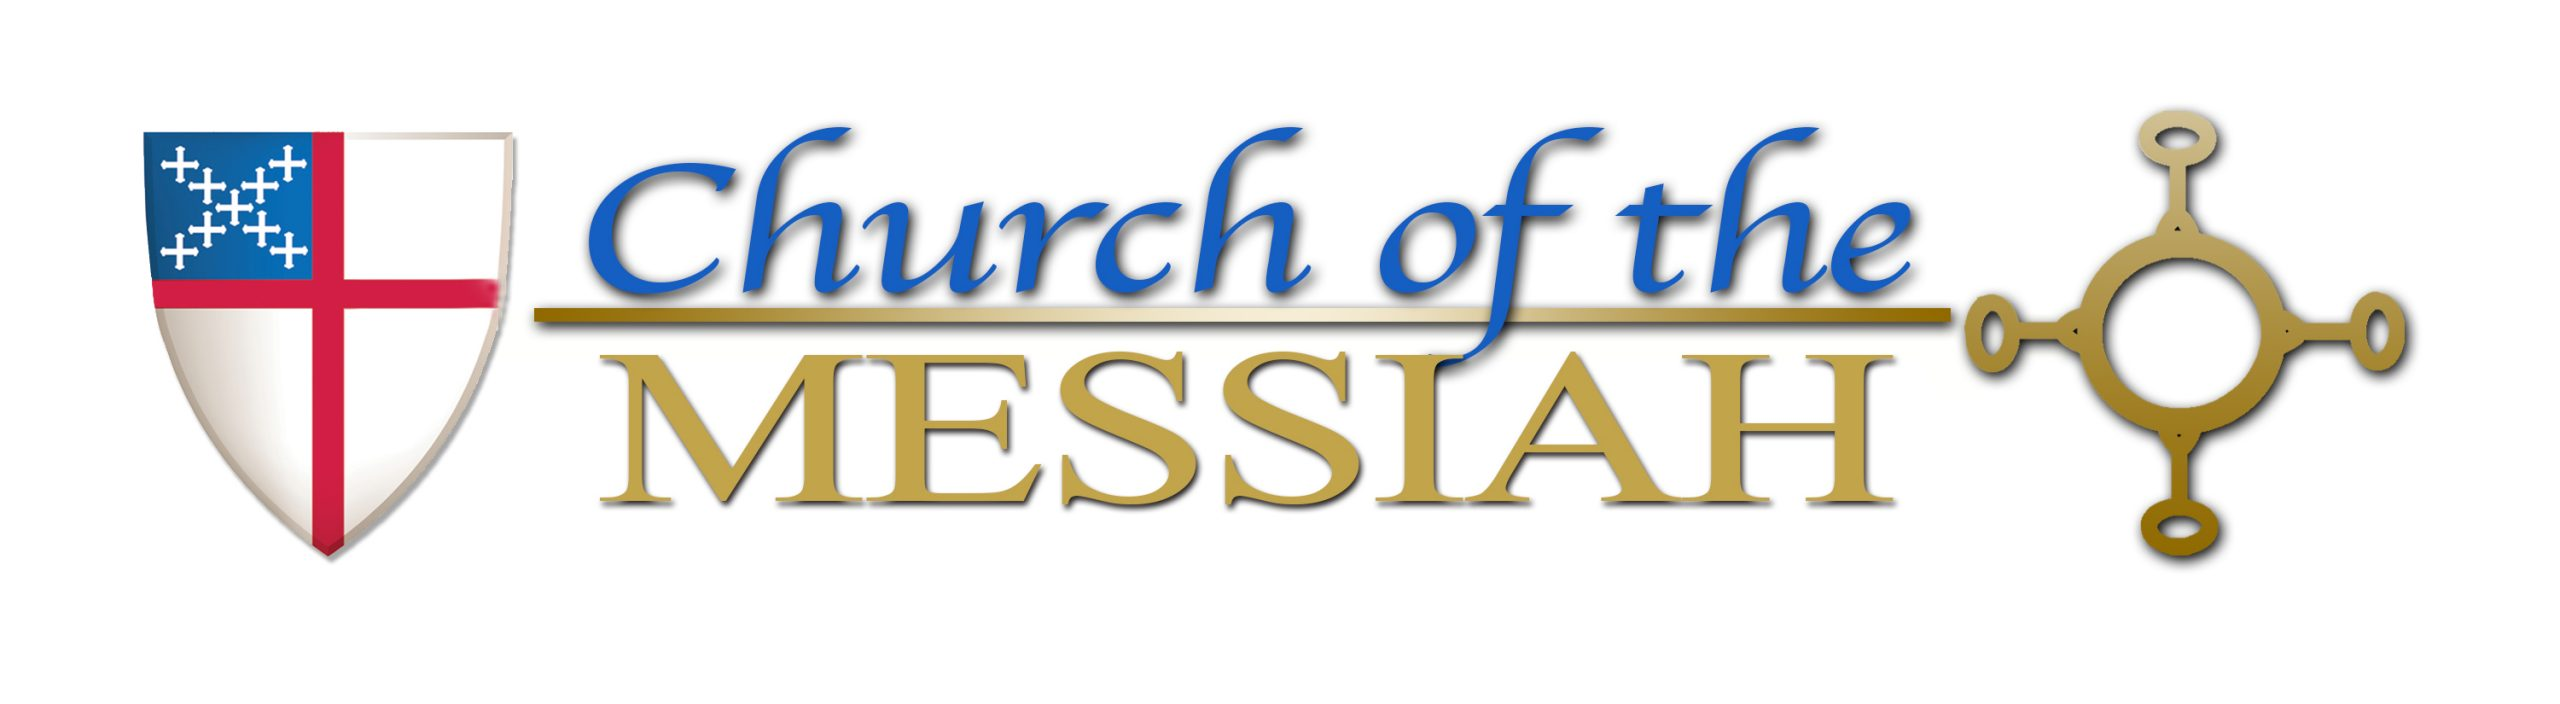 Church of the Messiah